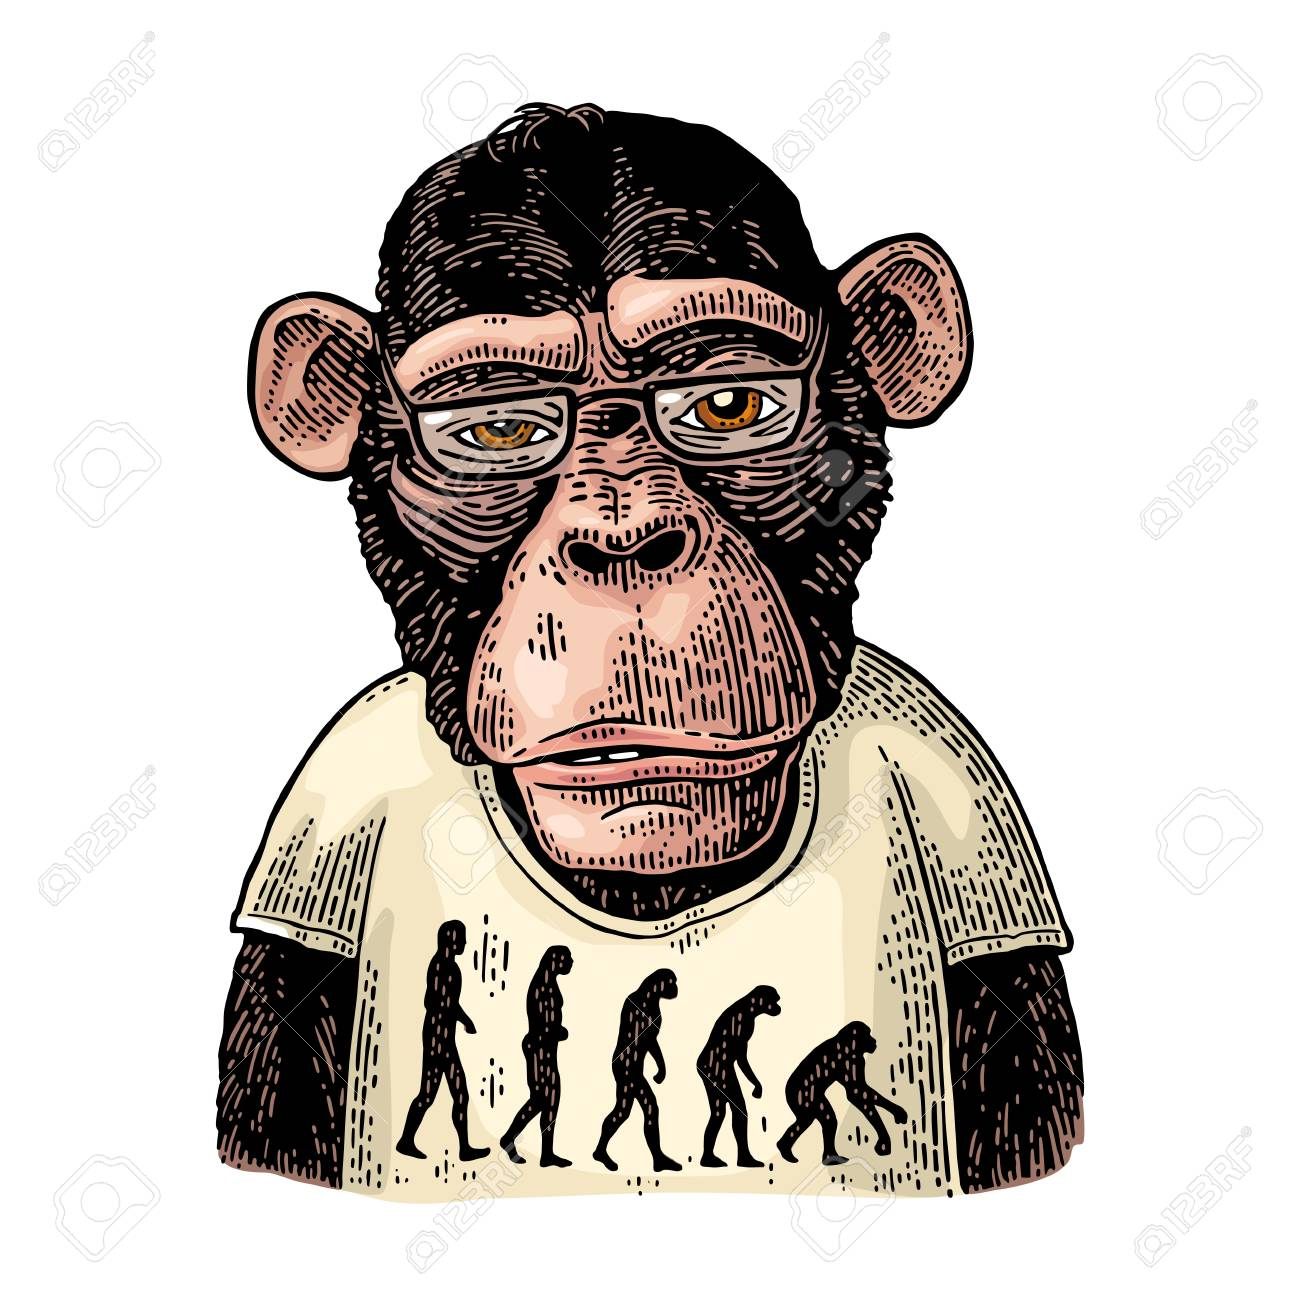 Monkeys dressed in a T-shirt with the theory of evolution on the contrary. - 112627925